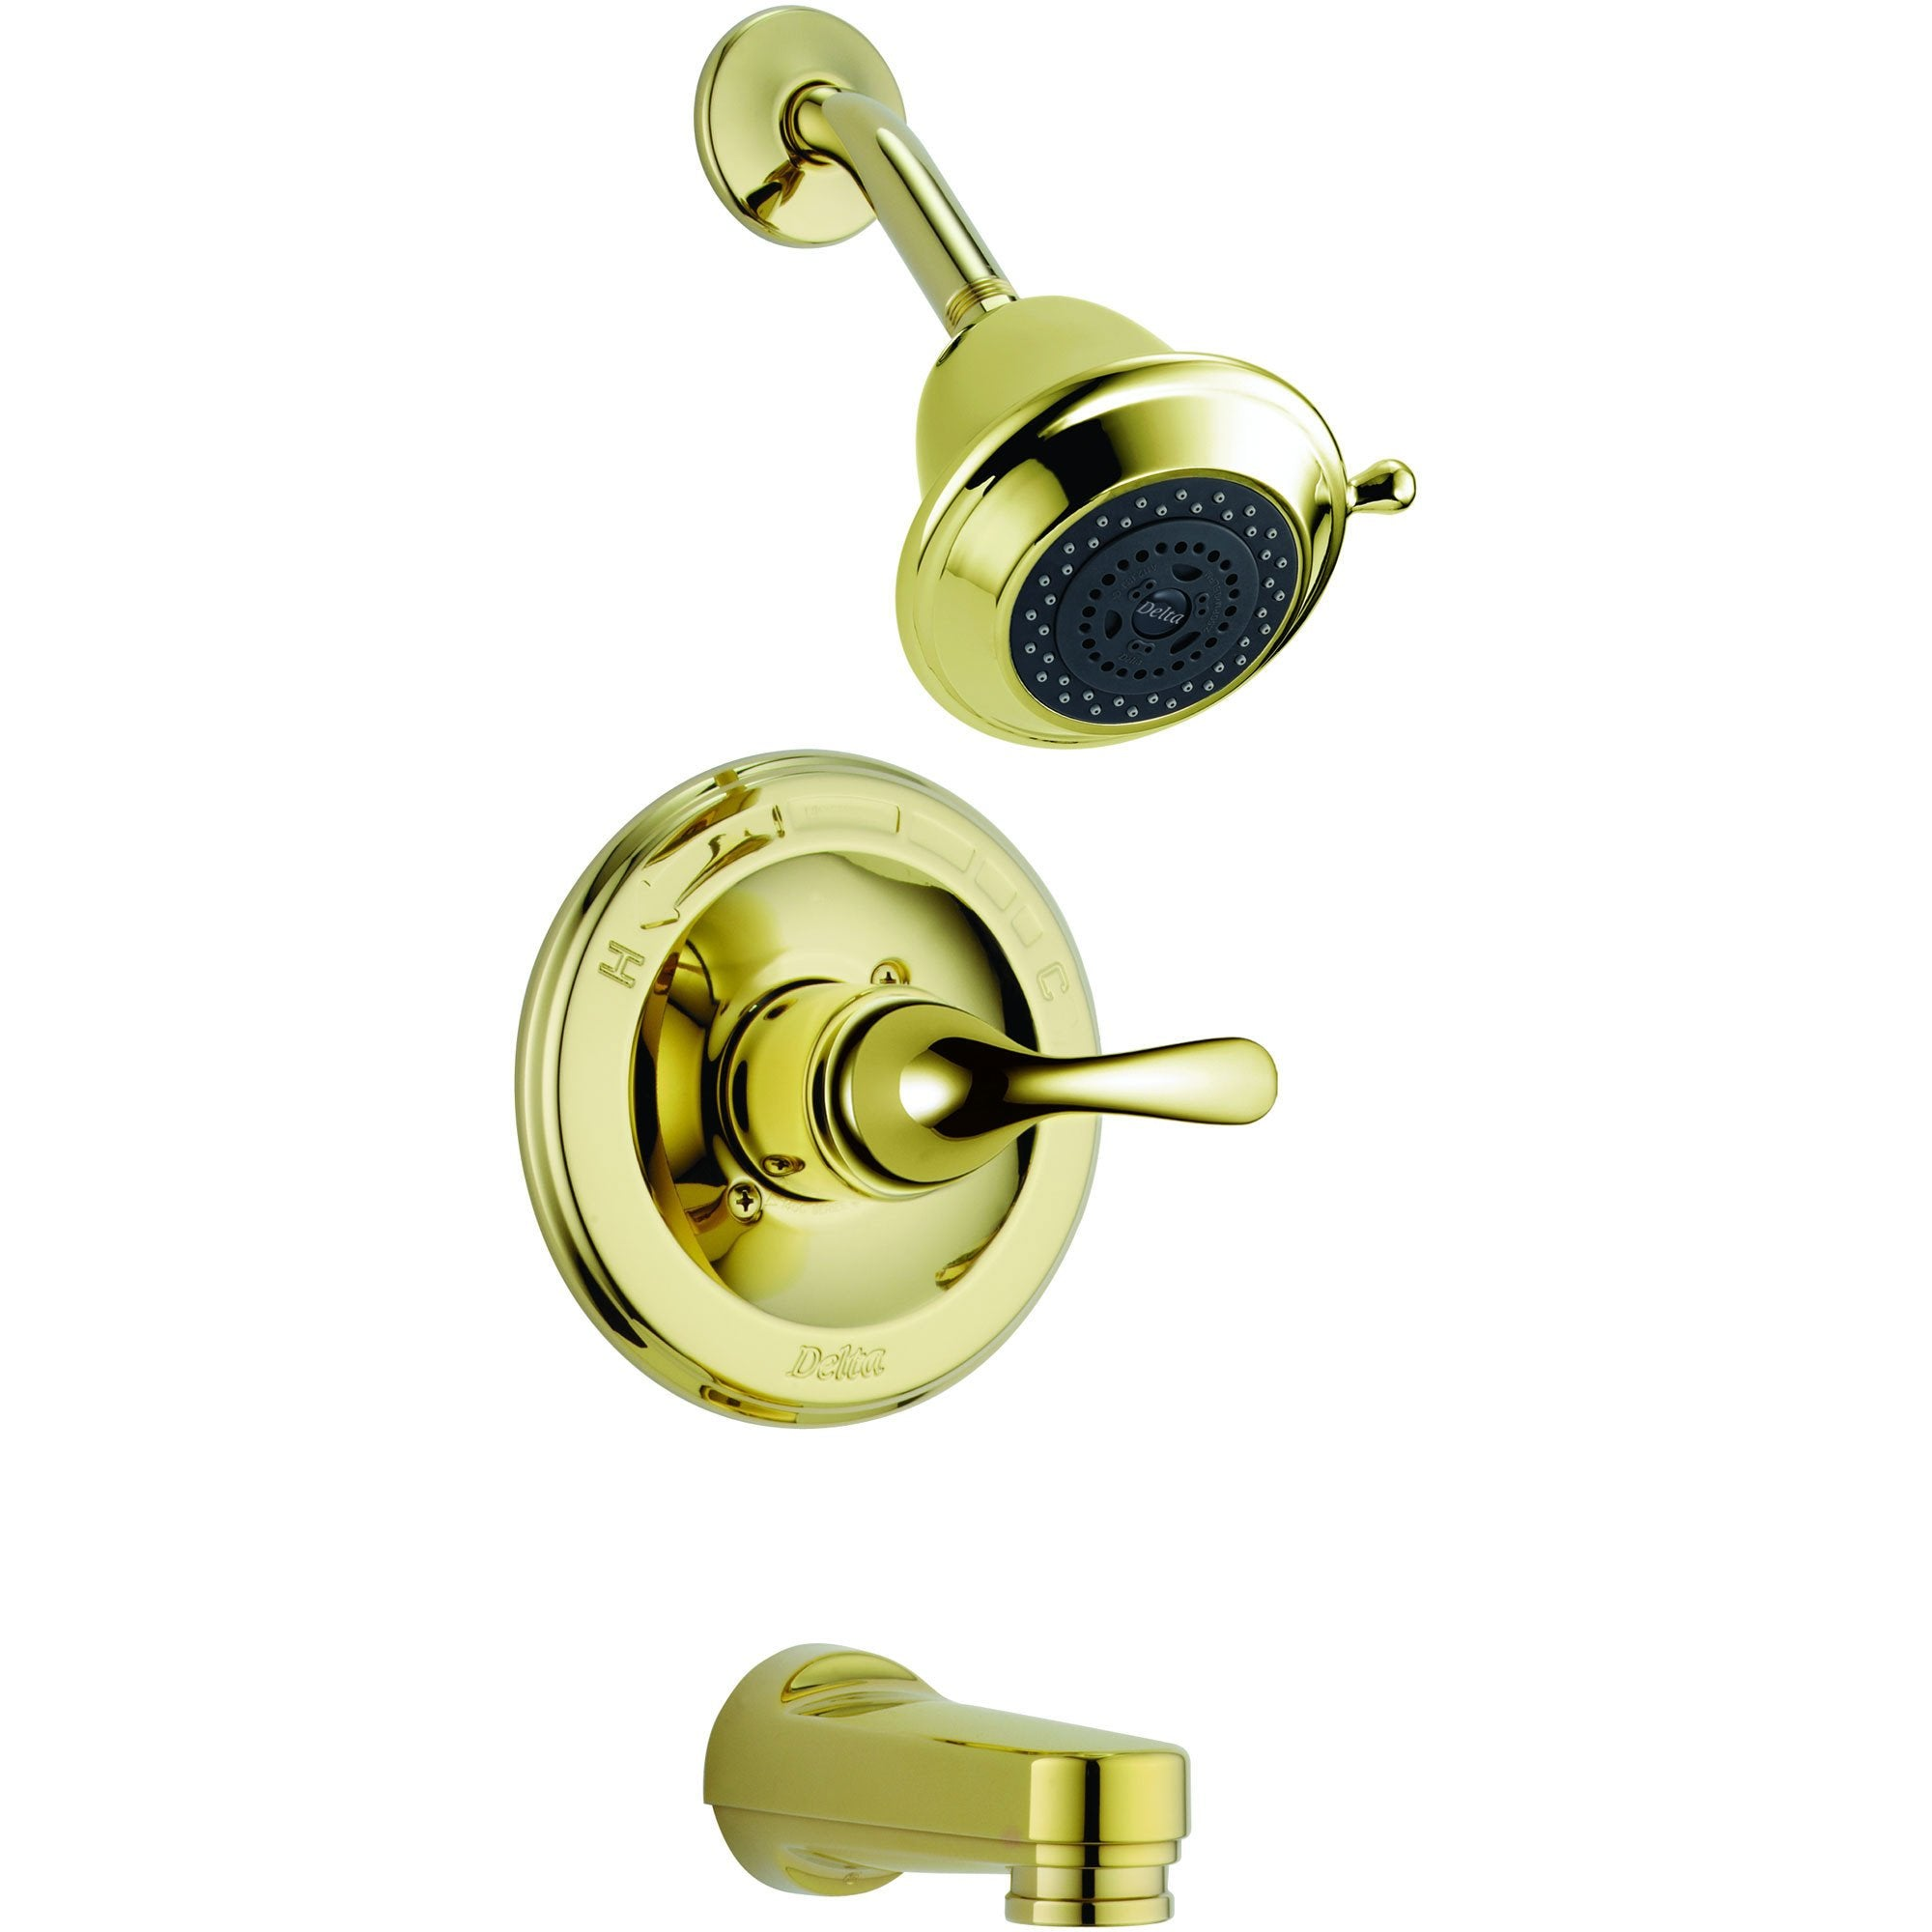 Delta Classic Polished Brass Single Handle Tub and Shower Faucet w/ Valve D234V